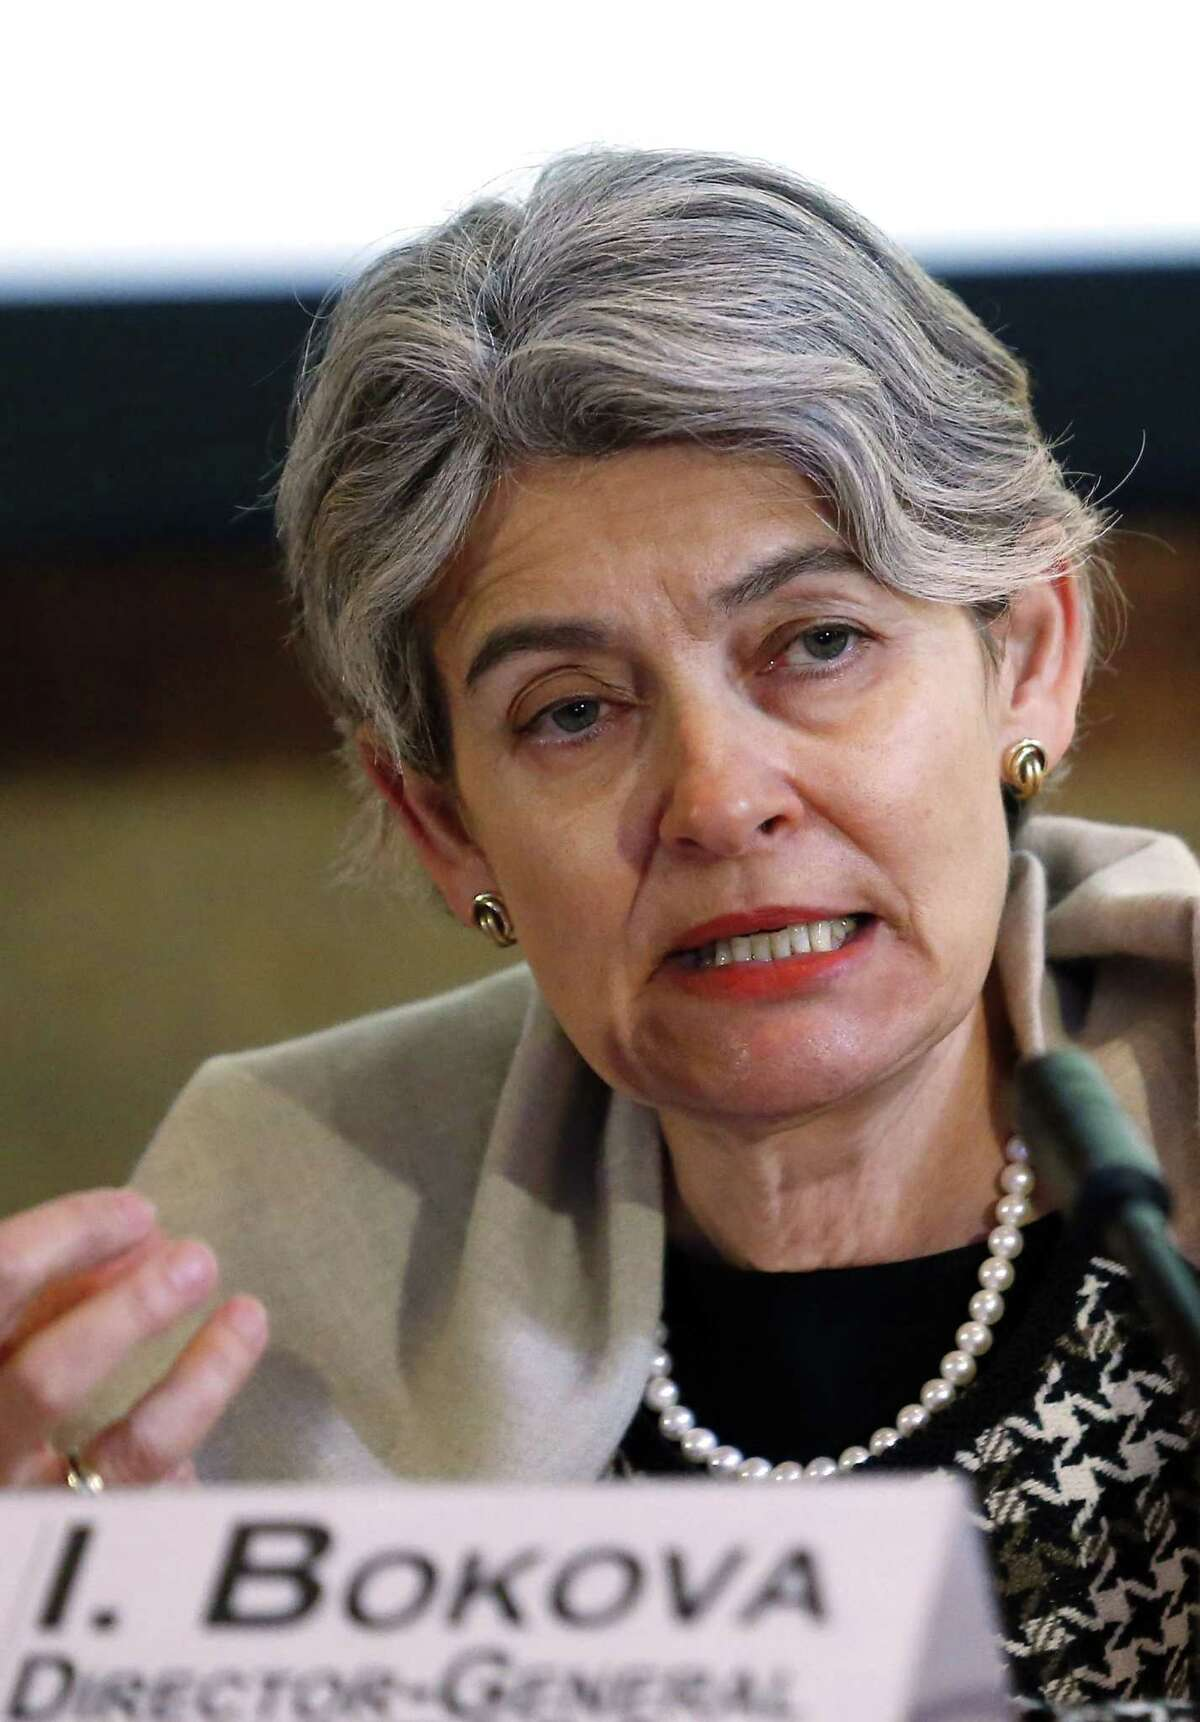 Irina Bokova, Director General of the U.N.'s culture agency UNESCO, speaks during a press conference in Paris, France, Friday, Feb. 27, 2015. Bokova asked for an emergency meeting of the U.N. Security Council to be convened